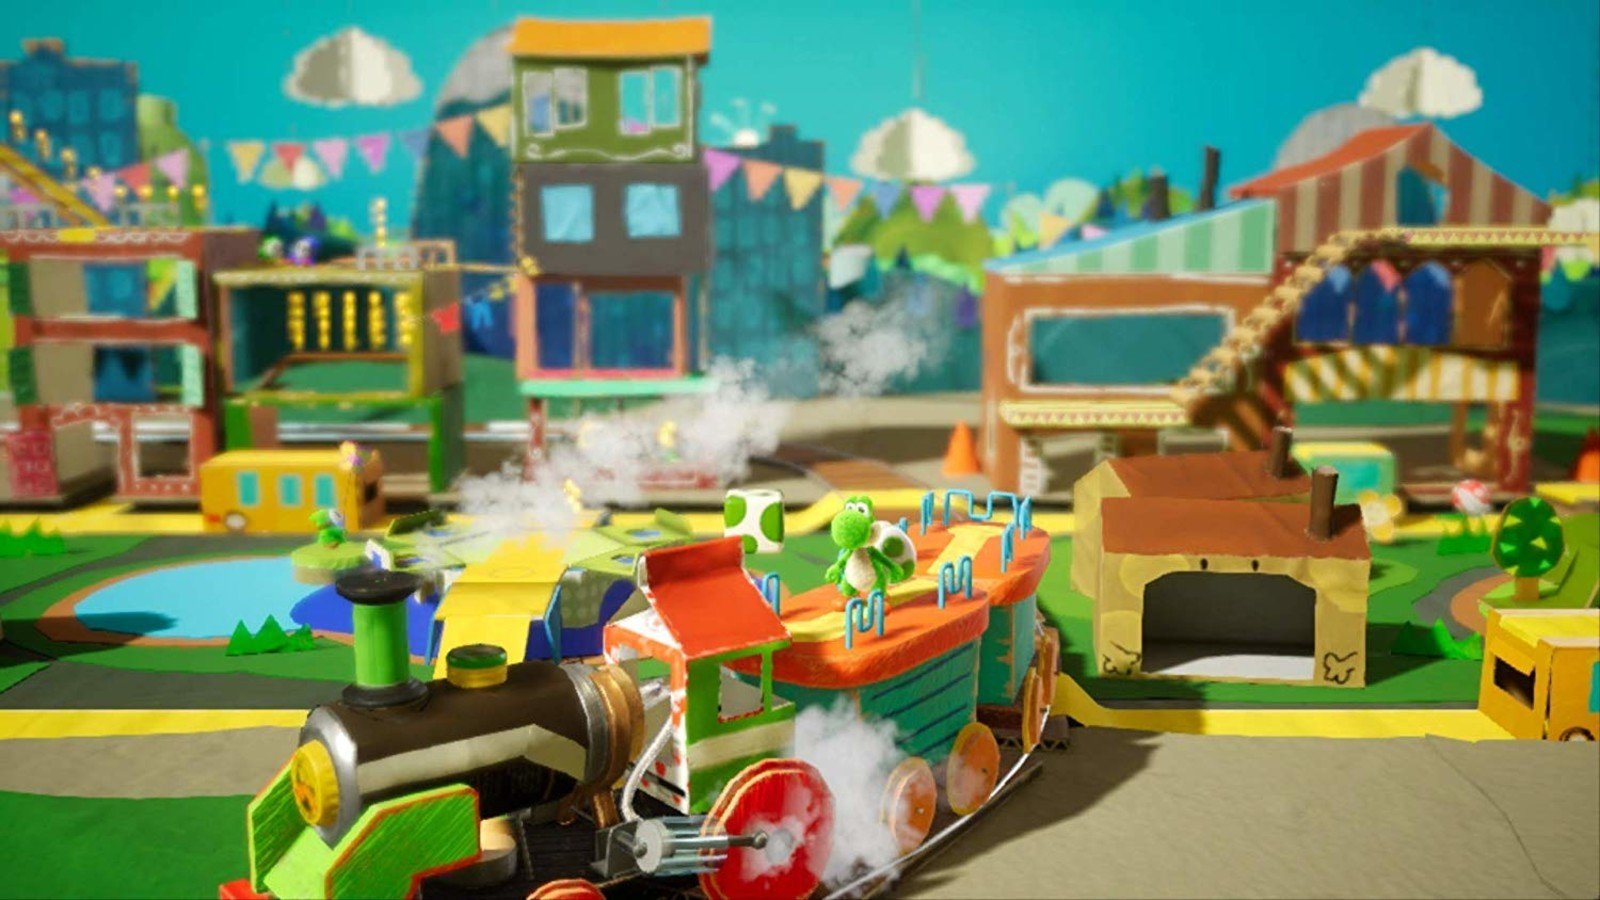 Yoshi's Crafted World Review: Should you buy it? | iMore